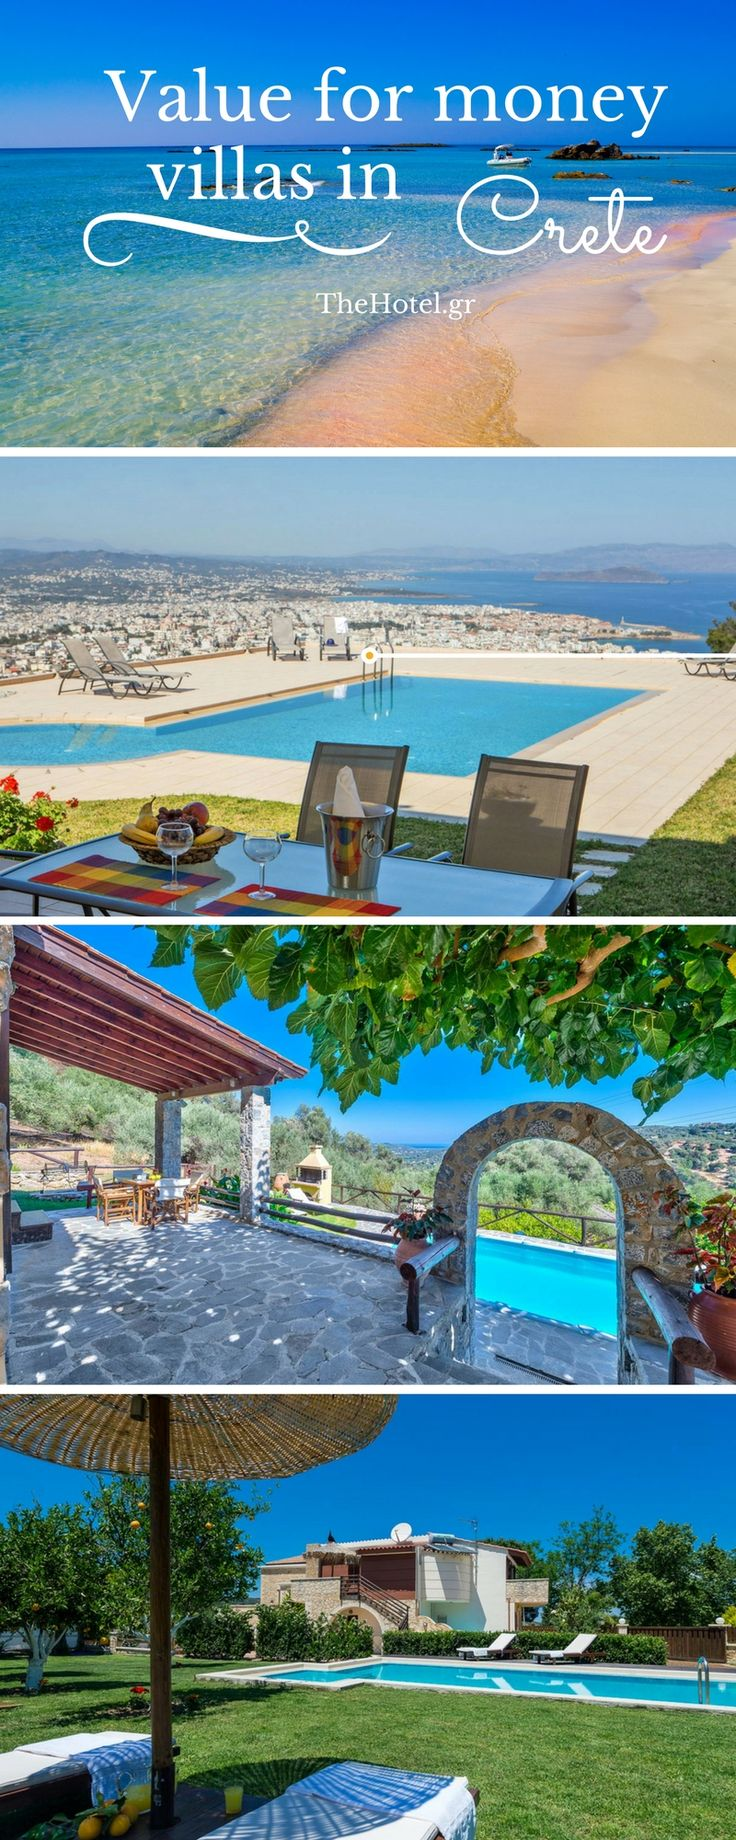 Book a budget villa for your holidays in sunny Crete!